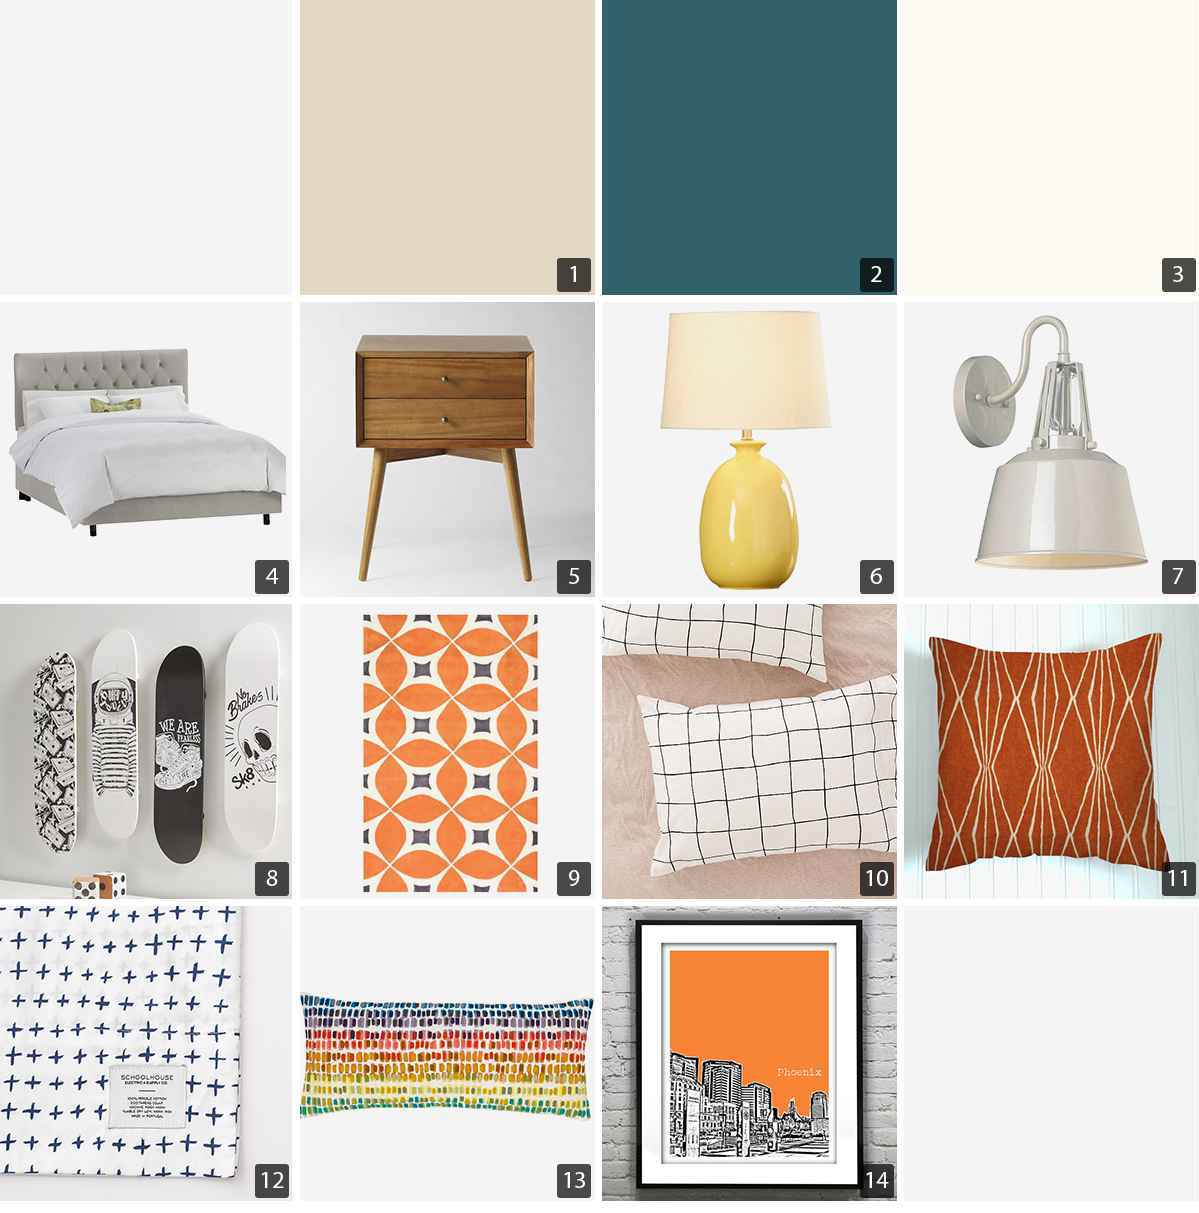 Collage of bedroom products including gray bed frame, wood nightstand, and orange rug photo